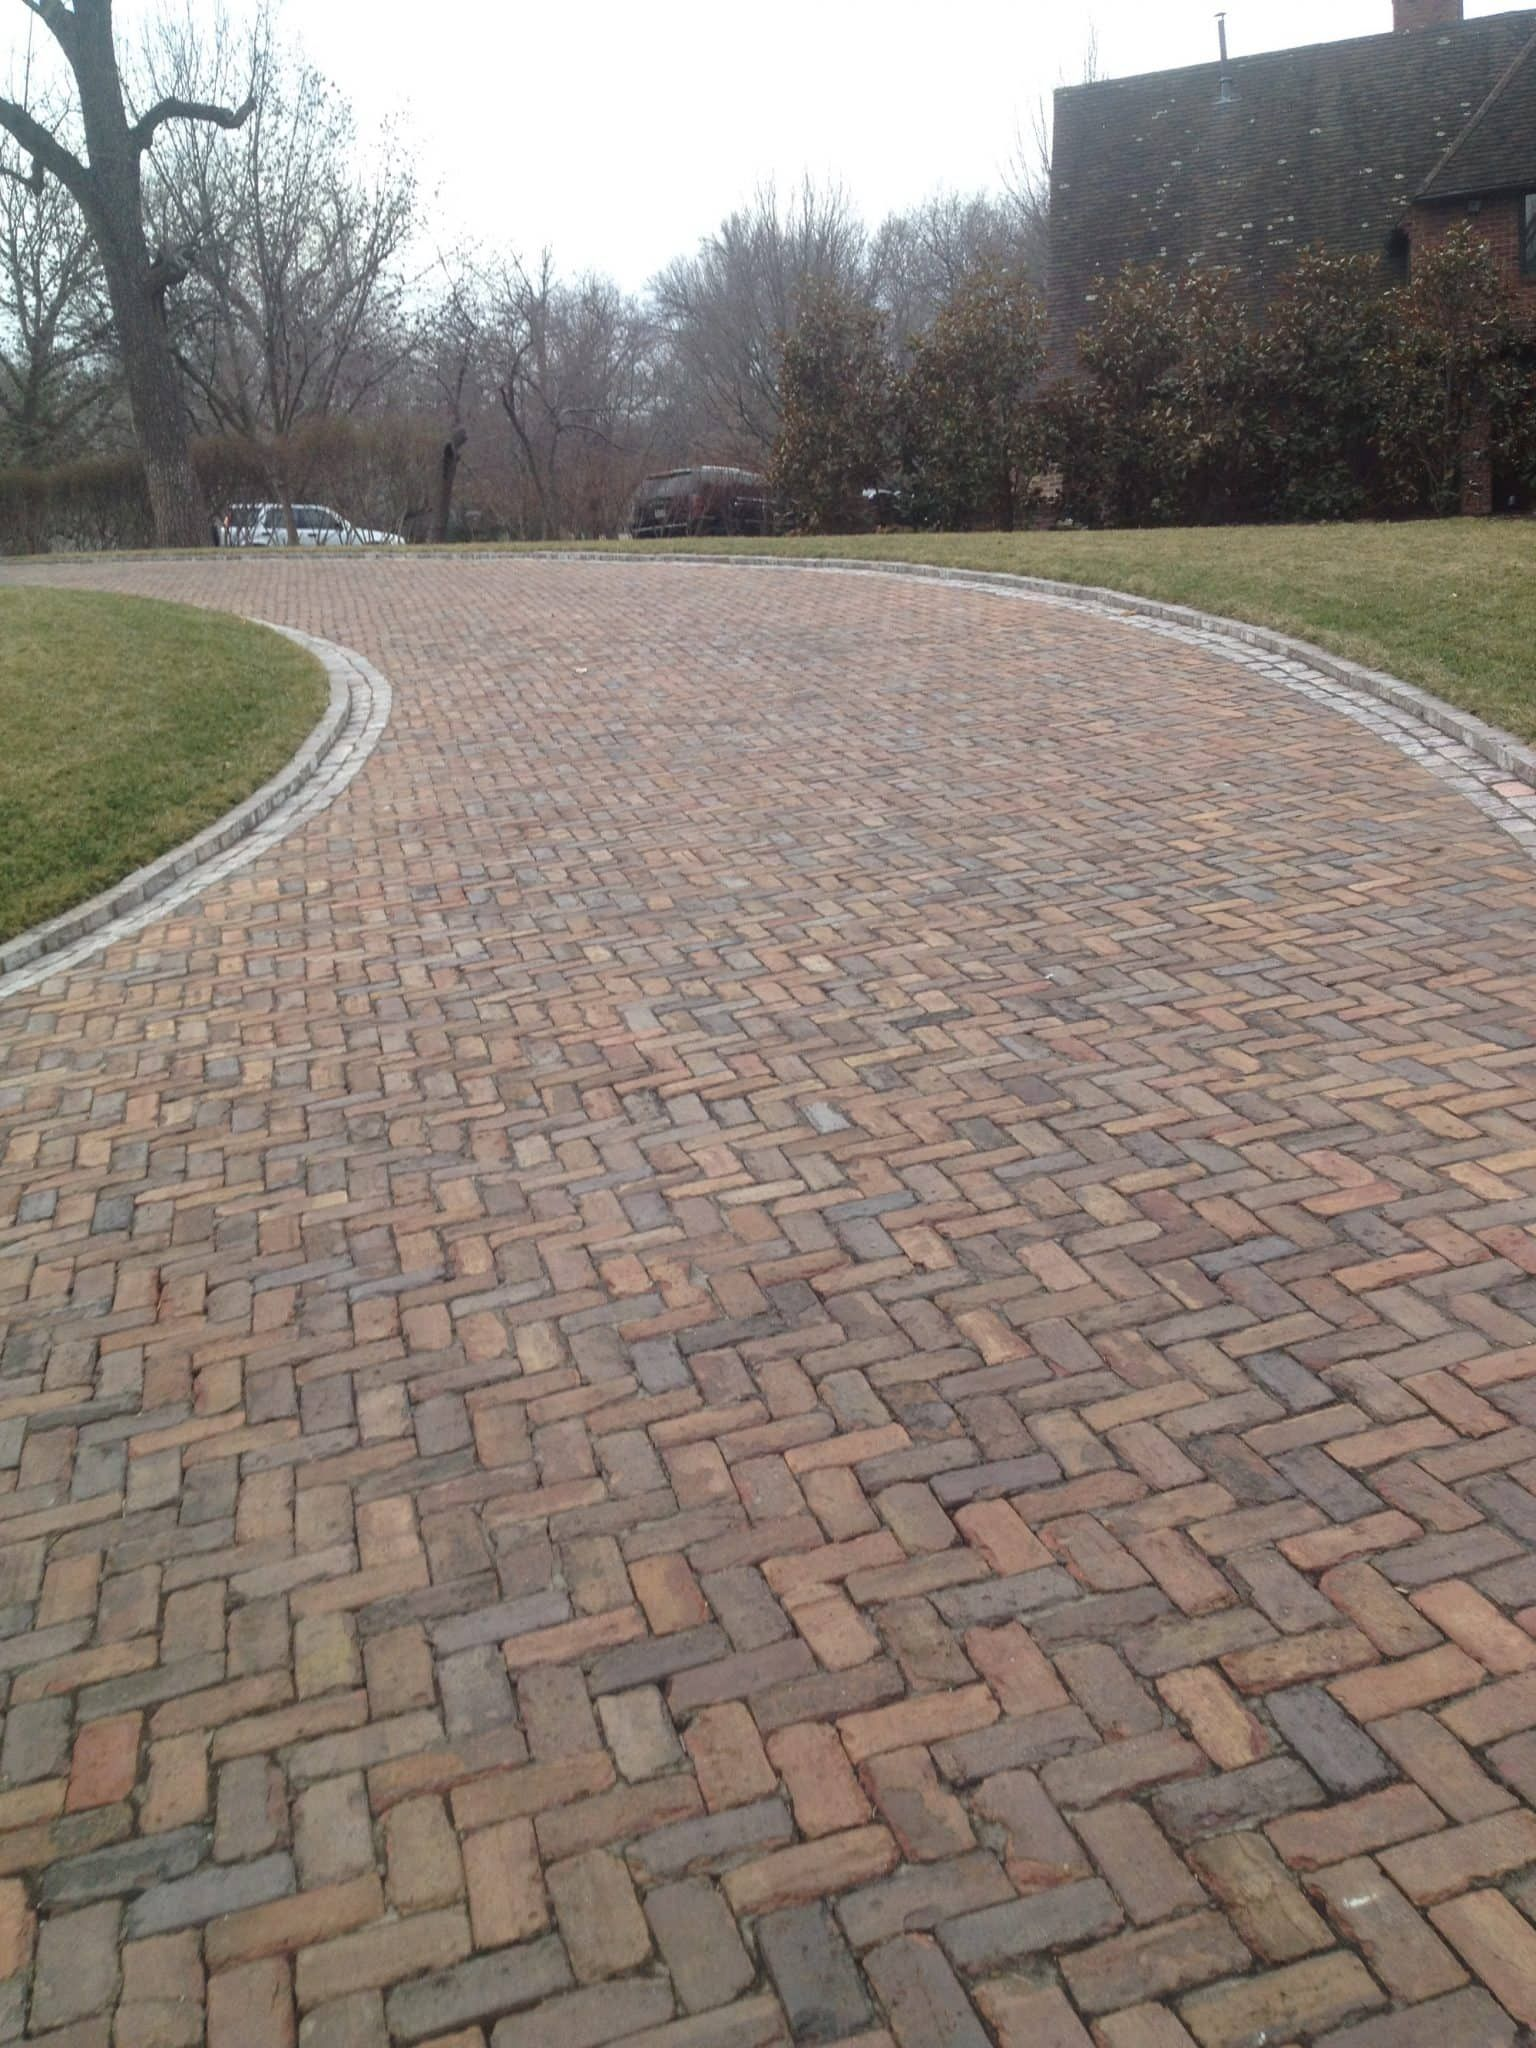 Reclaimed Antique Street Pavers For Sale Pavers Pavers For Sale Backyard Garden